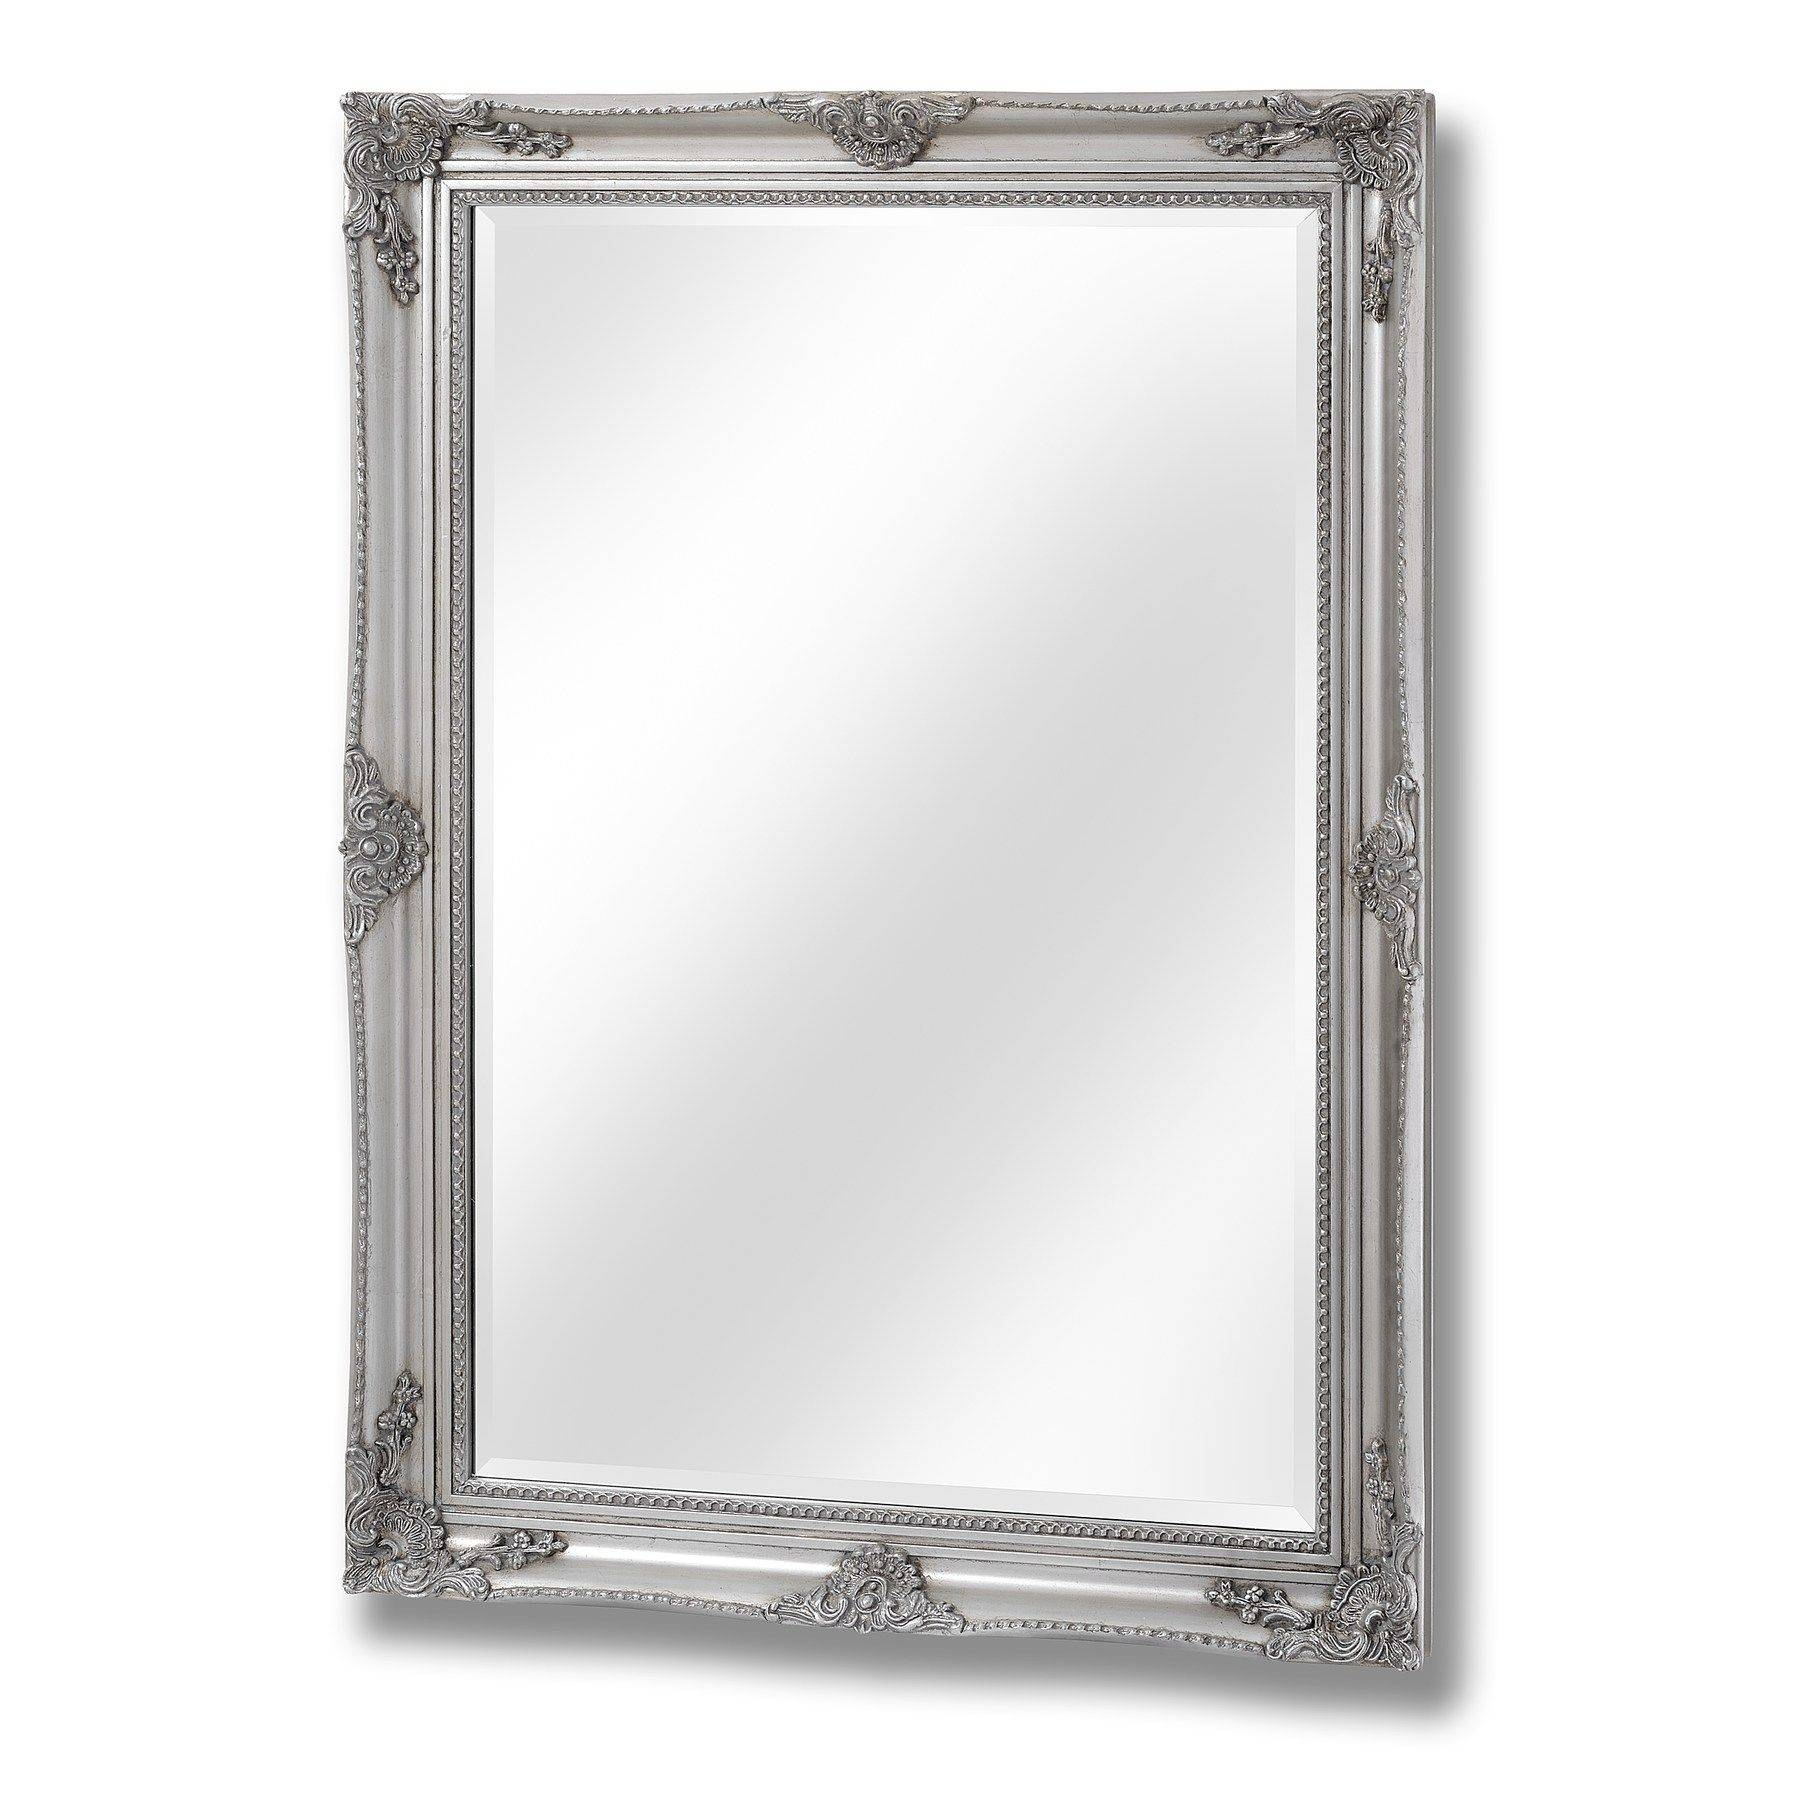 Antique Silver Baroque Style Mirror Pertaining To Silver Baroque Mirrors (View 1 of 15)